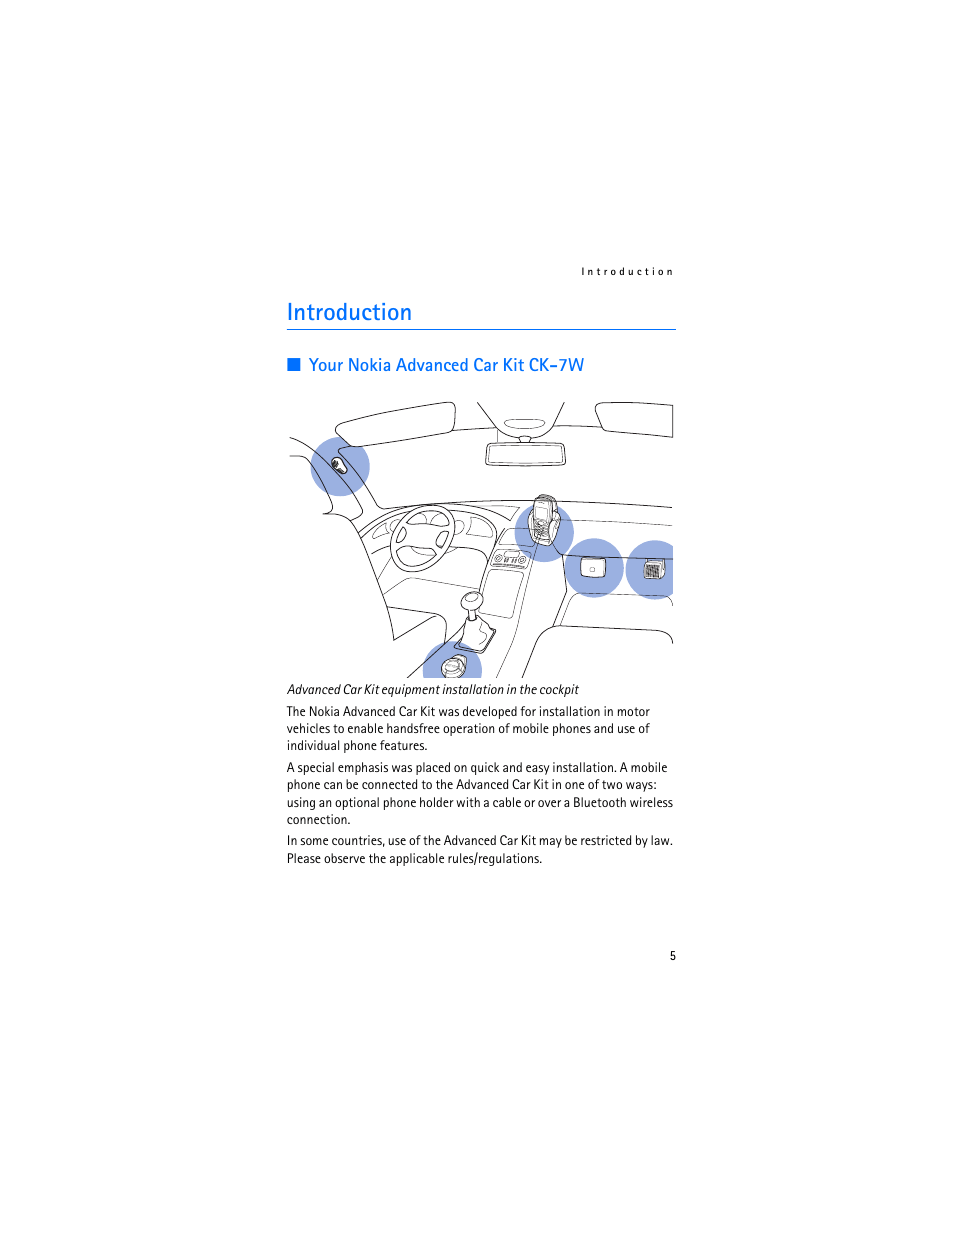 free download wiring diagram: Nokia Car Kit Ck 7w Wiring Diagram Somurich of Wiring Diagram